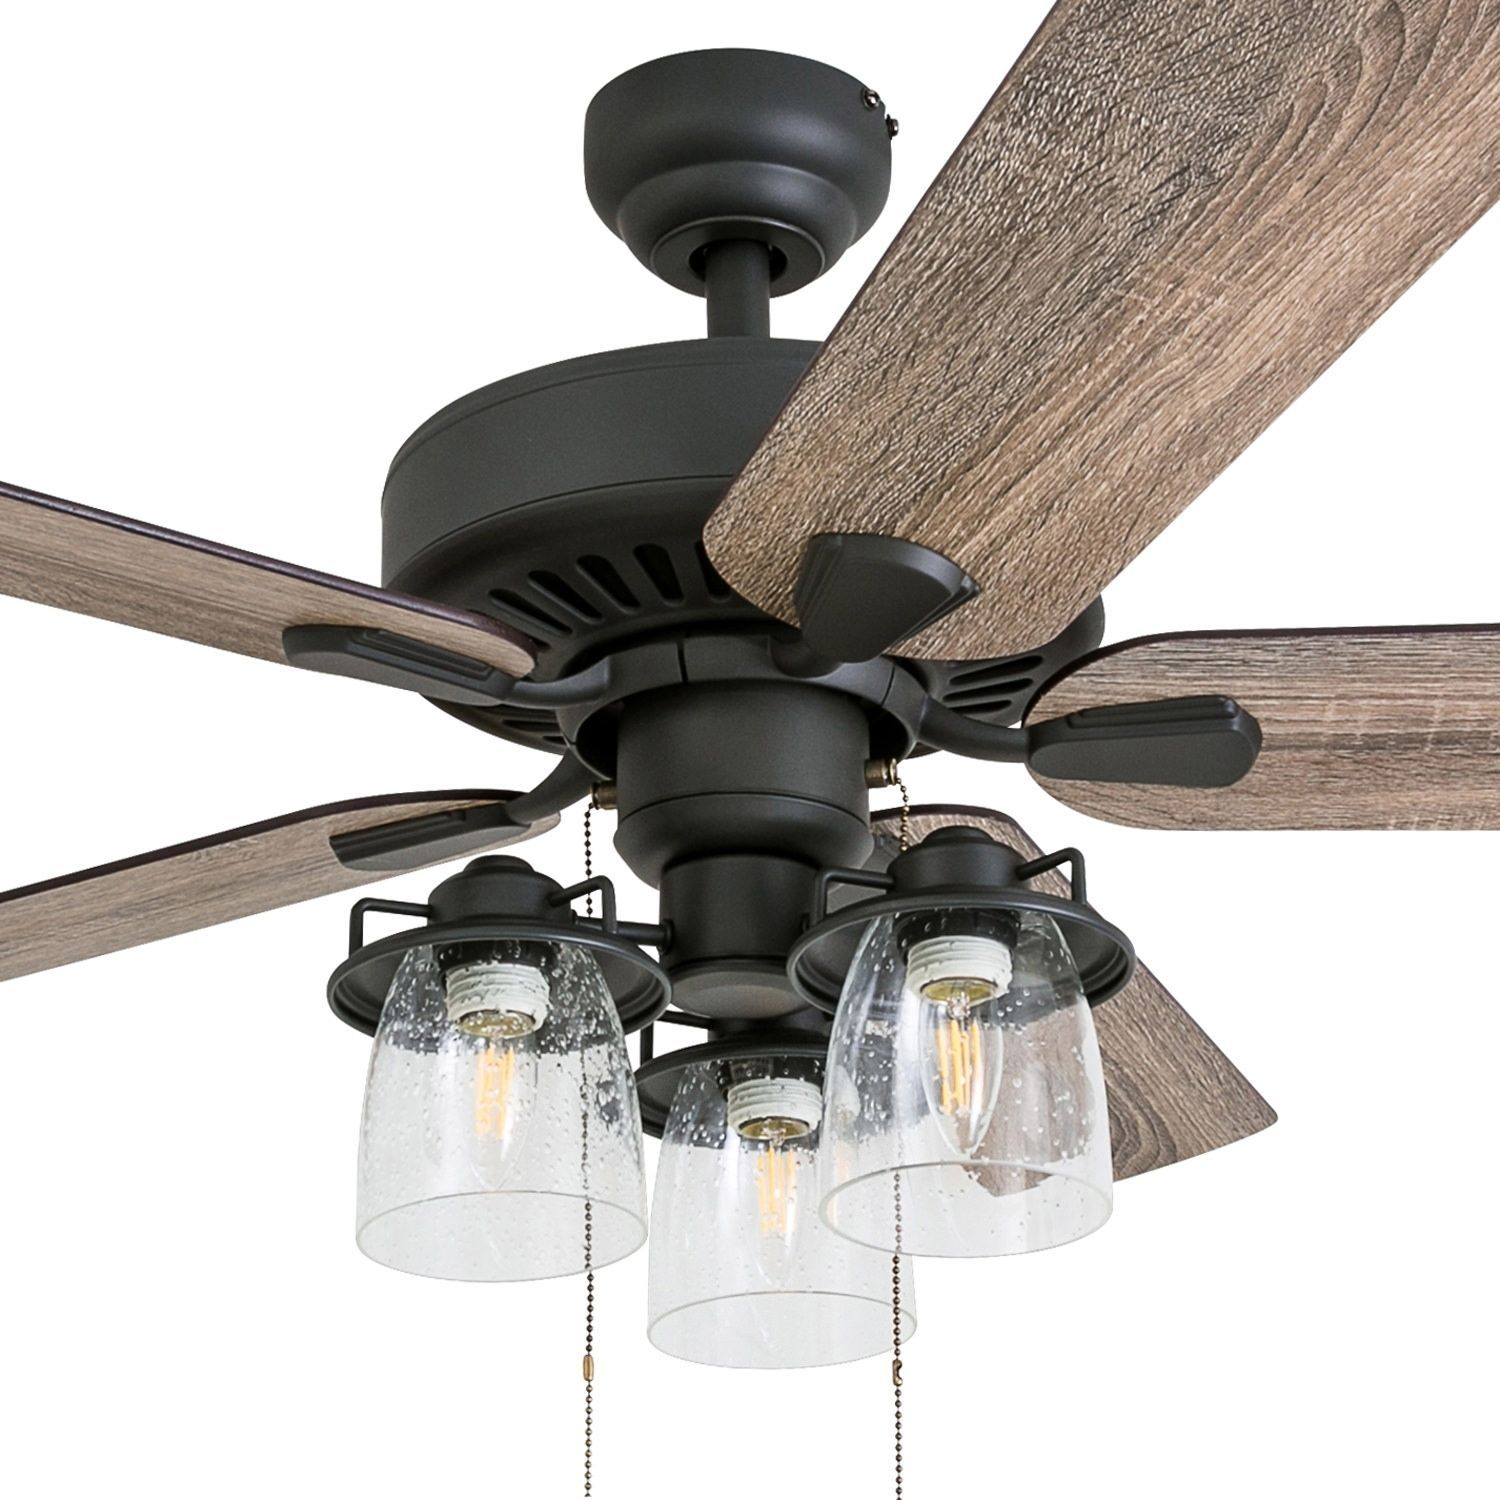 Prominence Home Briarcrest Farmhouse 52 Aged Bronze Led Ceiling Fan With Light 3 Speed Remote Ceiling Fan With Light Led Ceiling Fan Living Room Ceiling Fan 52 inch ceiling fan with light